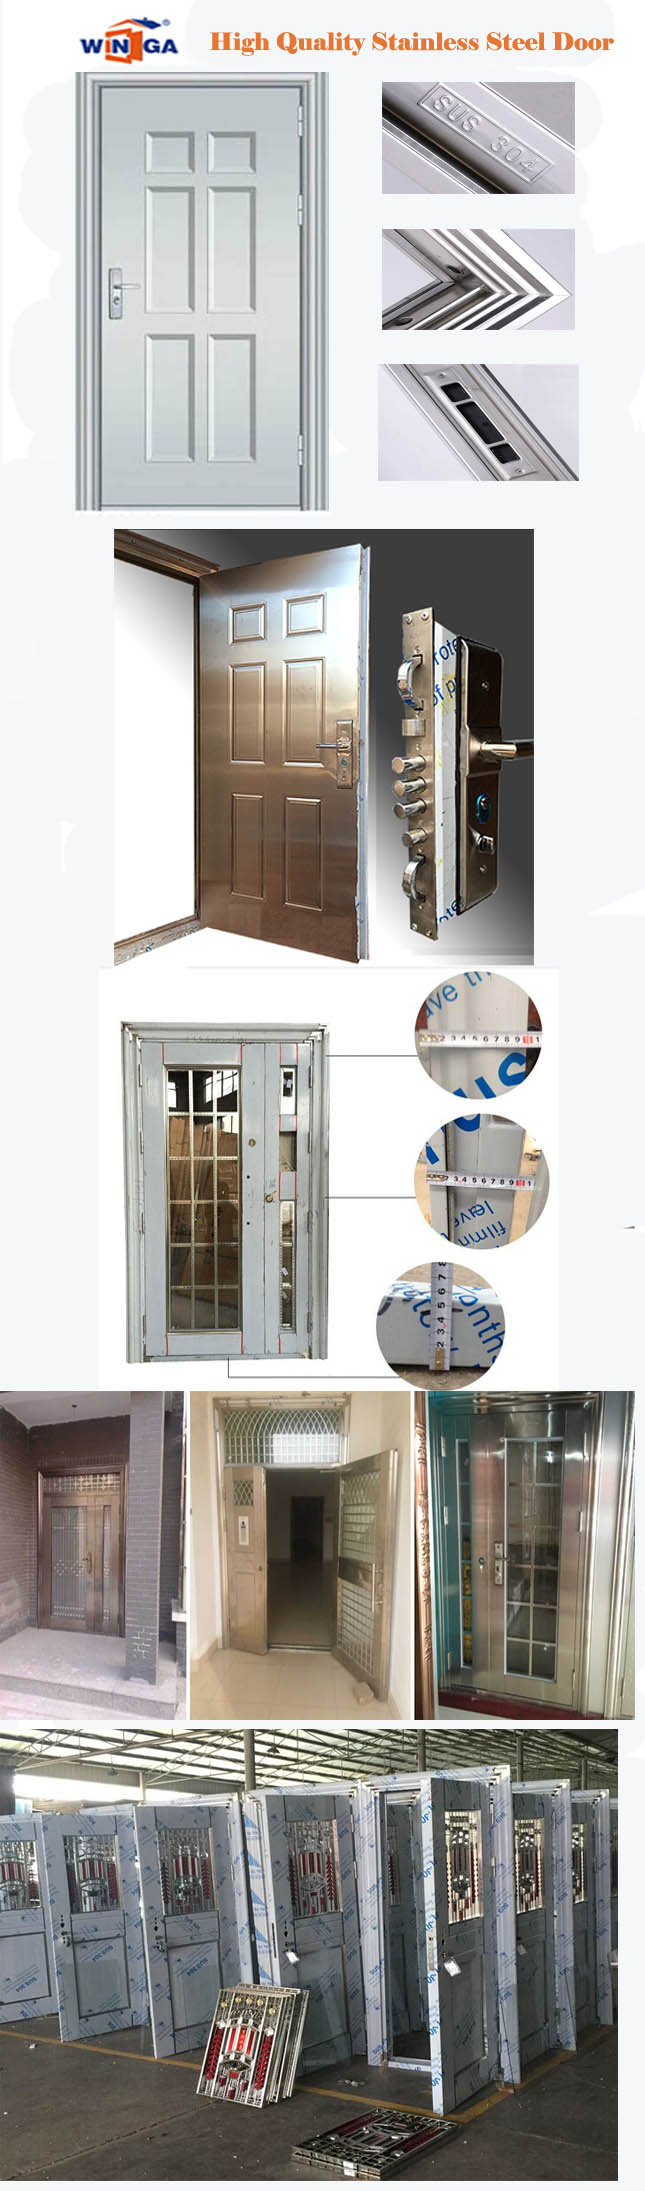 High Quality Stainless Steel Security Glass Door ((W-GH-19)